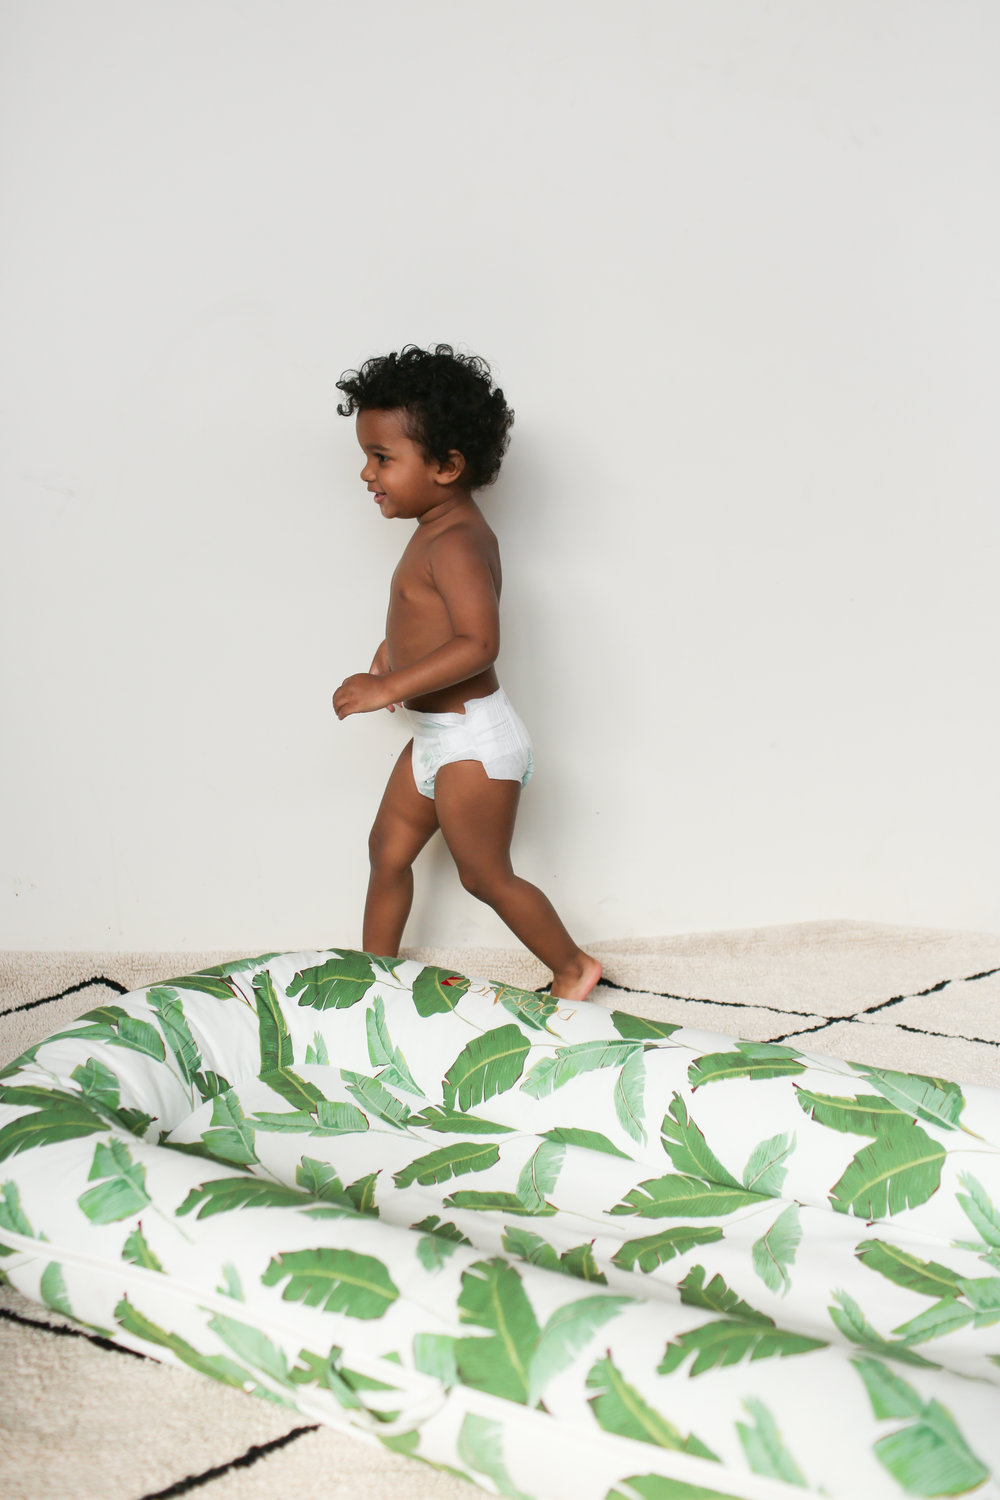 Lorena Canal Rugs - When you know you're about to have a baby in the house you need to baby proof and prepare everything. Many times in this process, the house doesn't seem cute anymore. Lorena Canal offers beautiful and very soft kid friendly designs, designed for a modern parent. What I love most is that you can throw them in the wash! As not only a mom but a pet owner, this feature is a major plus.lorenacanals.us